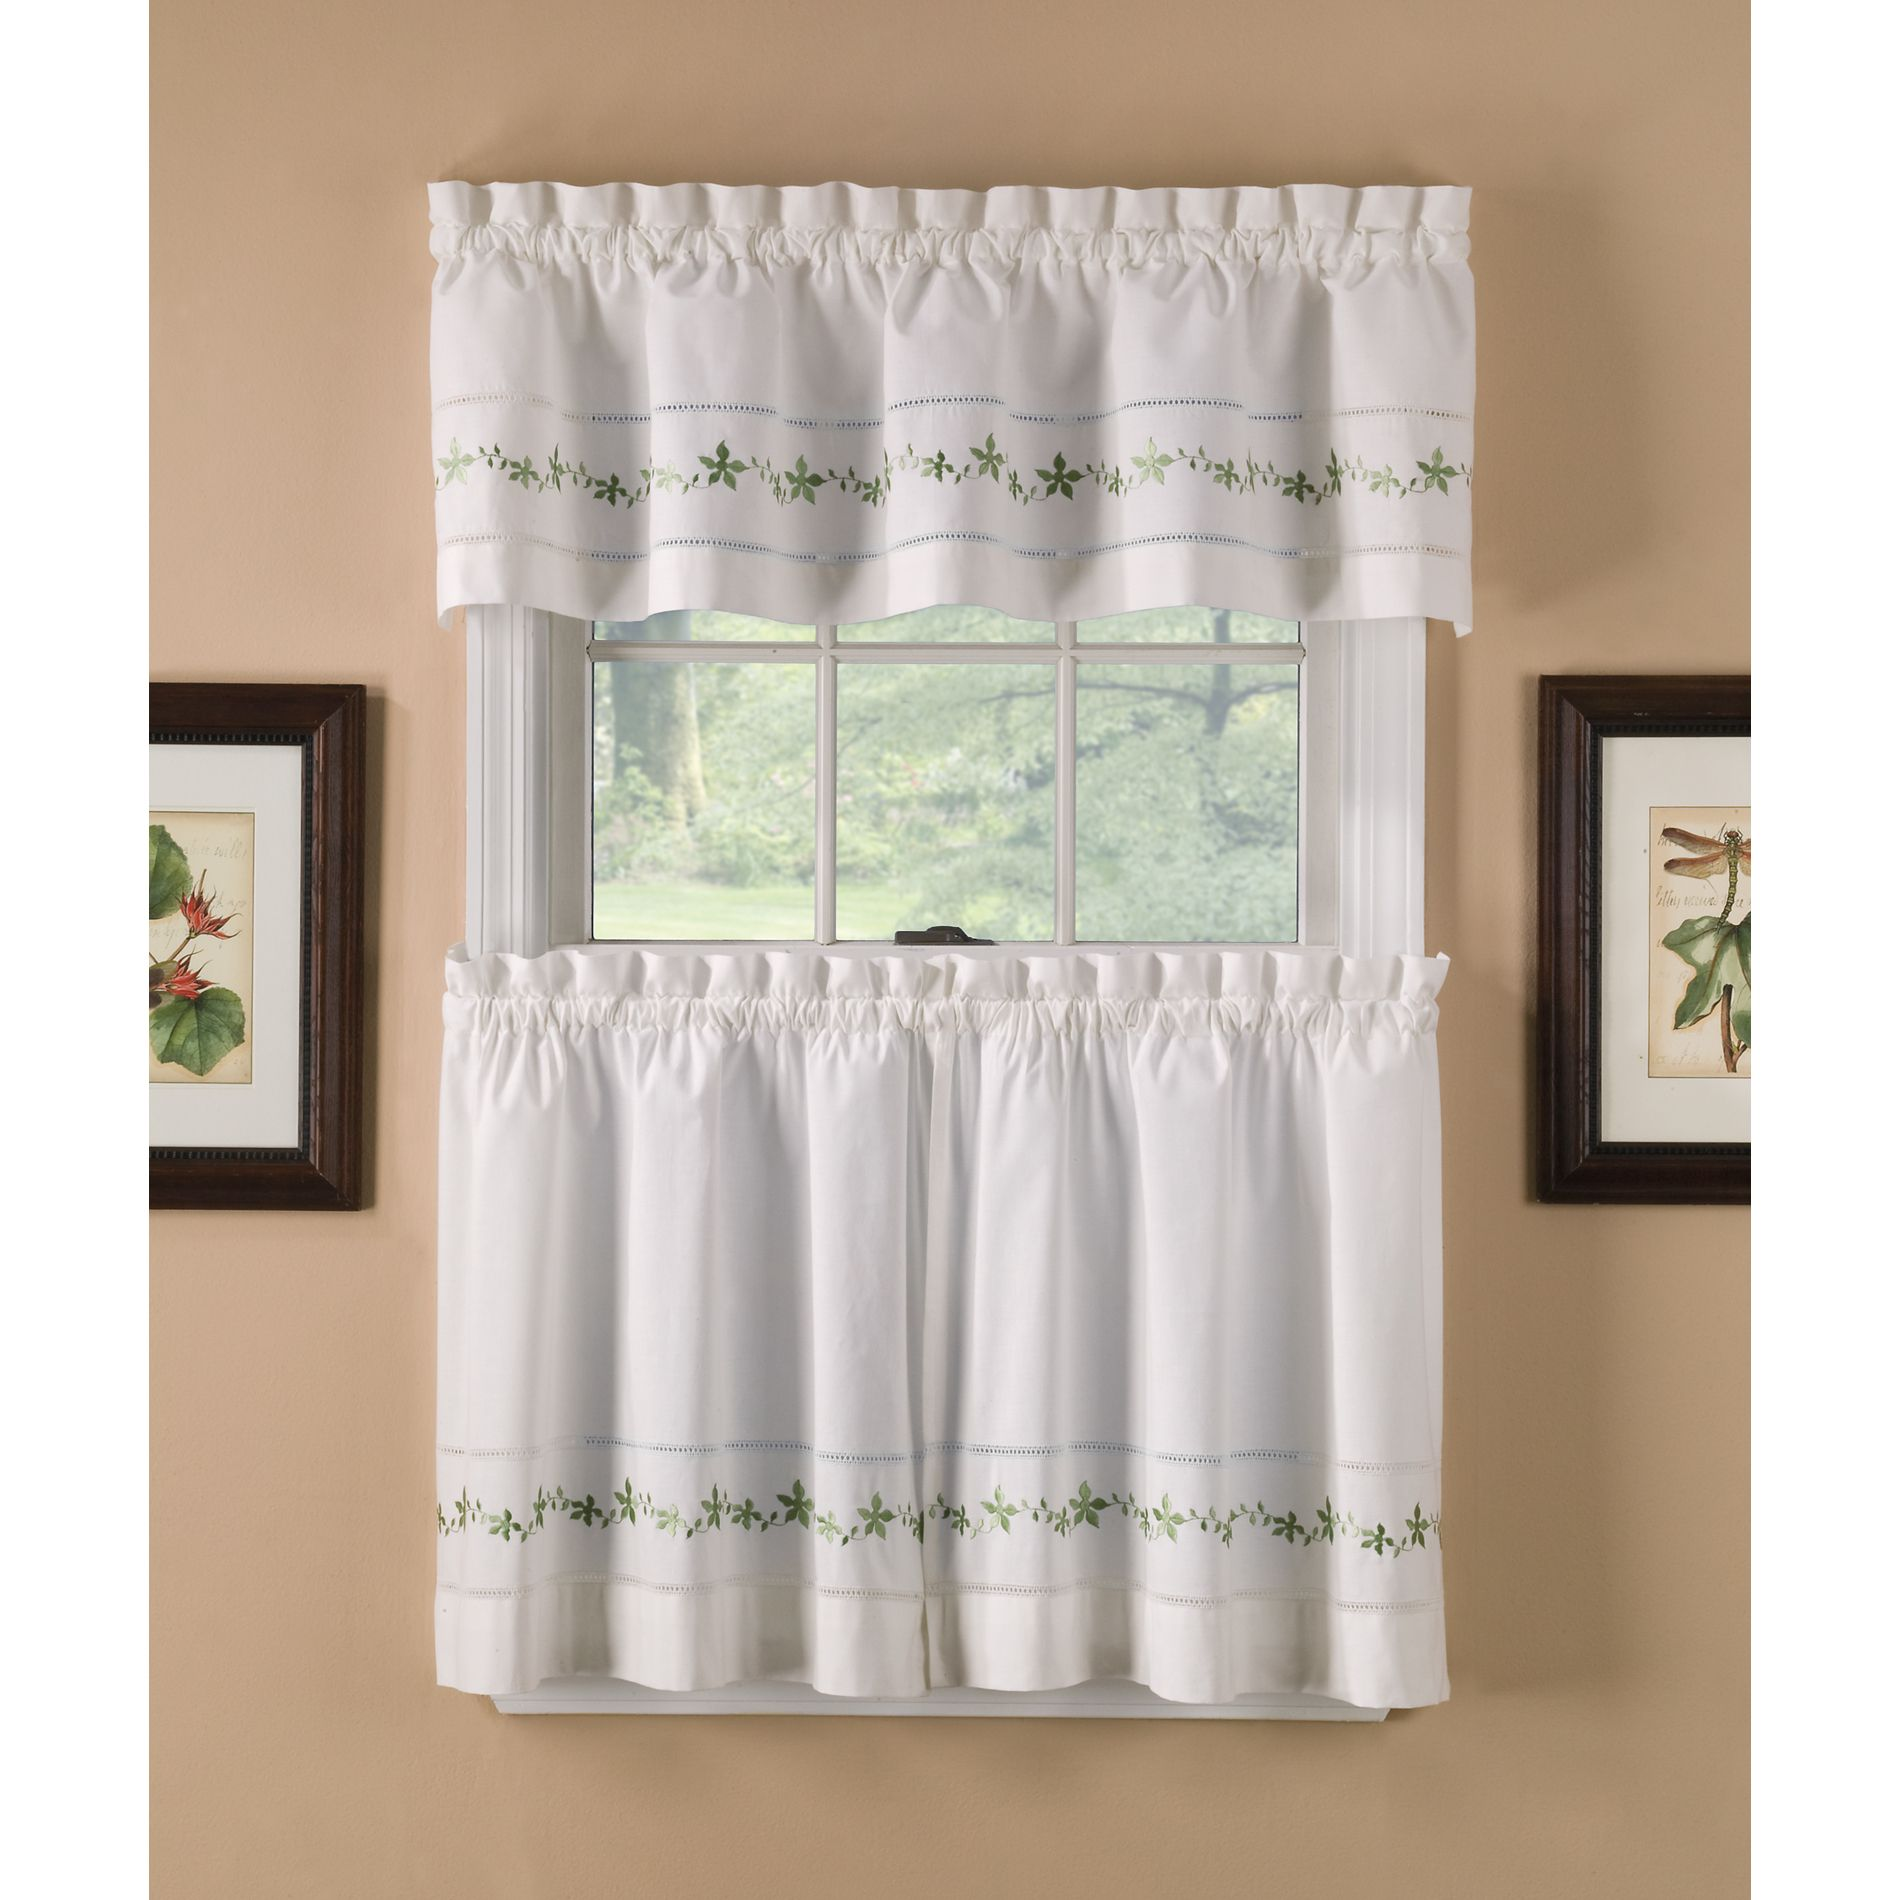 kmart kitchen chairs cabinet supply store curtains | ideas